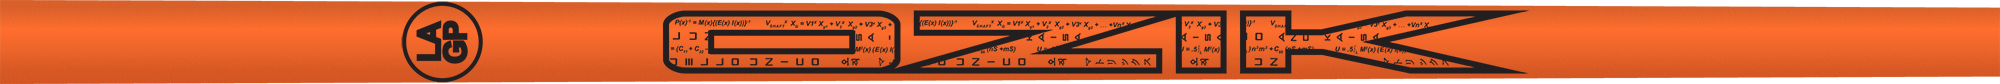 Ozik White Tie: Neon Orange Black Matte - Wood 50 R